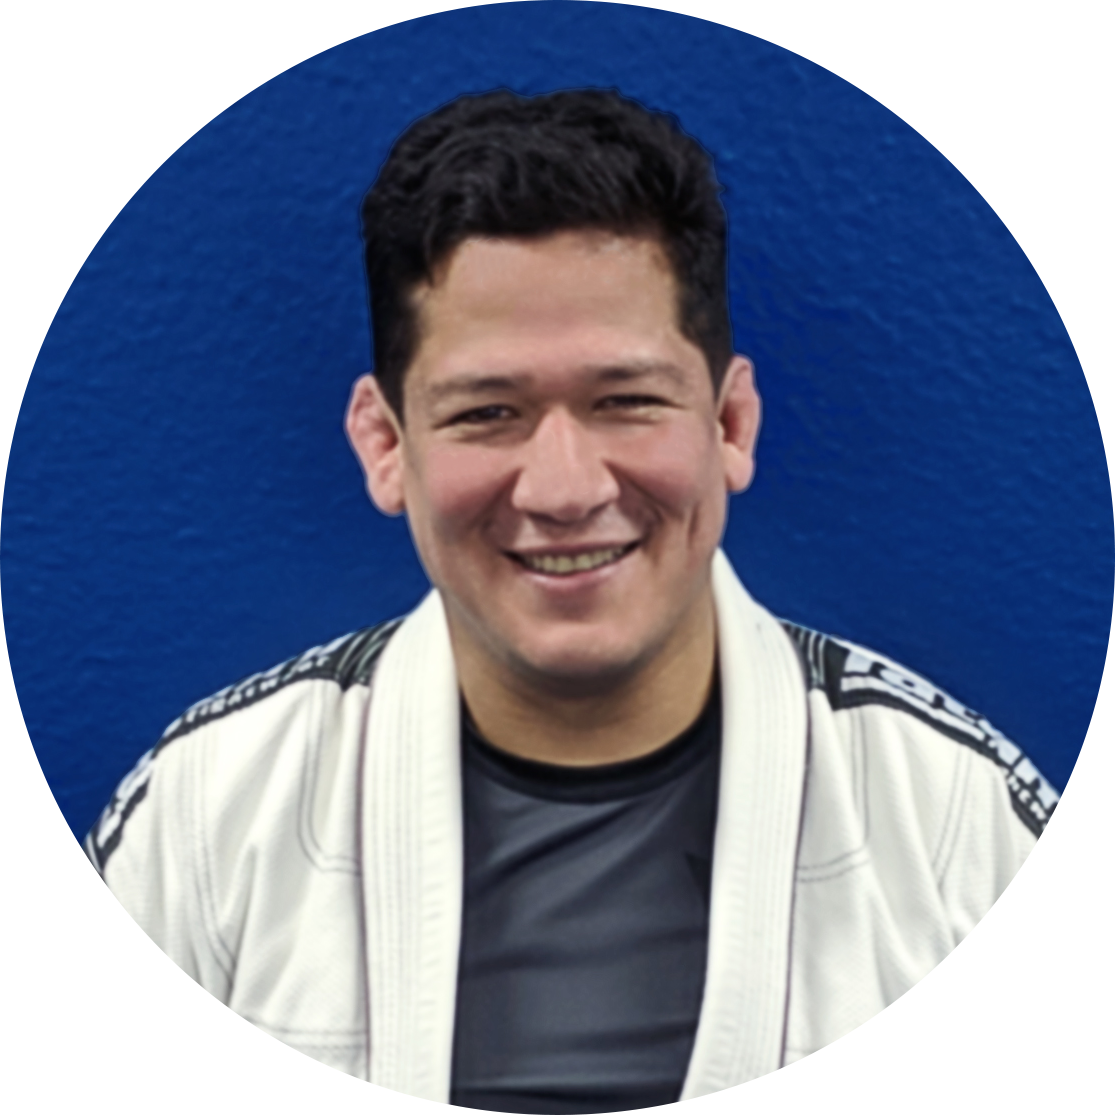 CHRISTIAN MONTES, HEAD JIU JITSU & KICKBOXING COACH